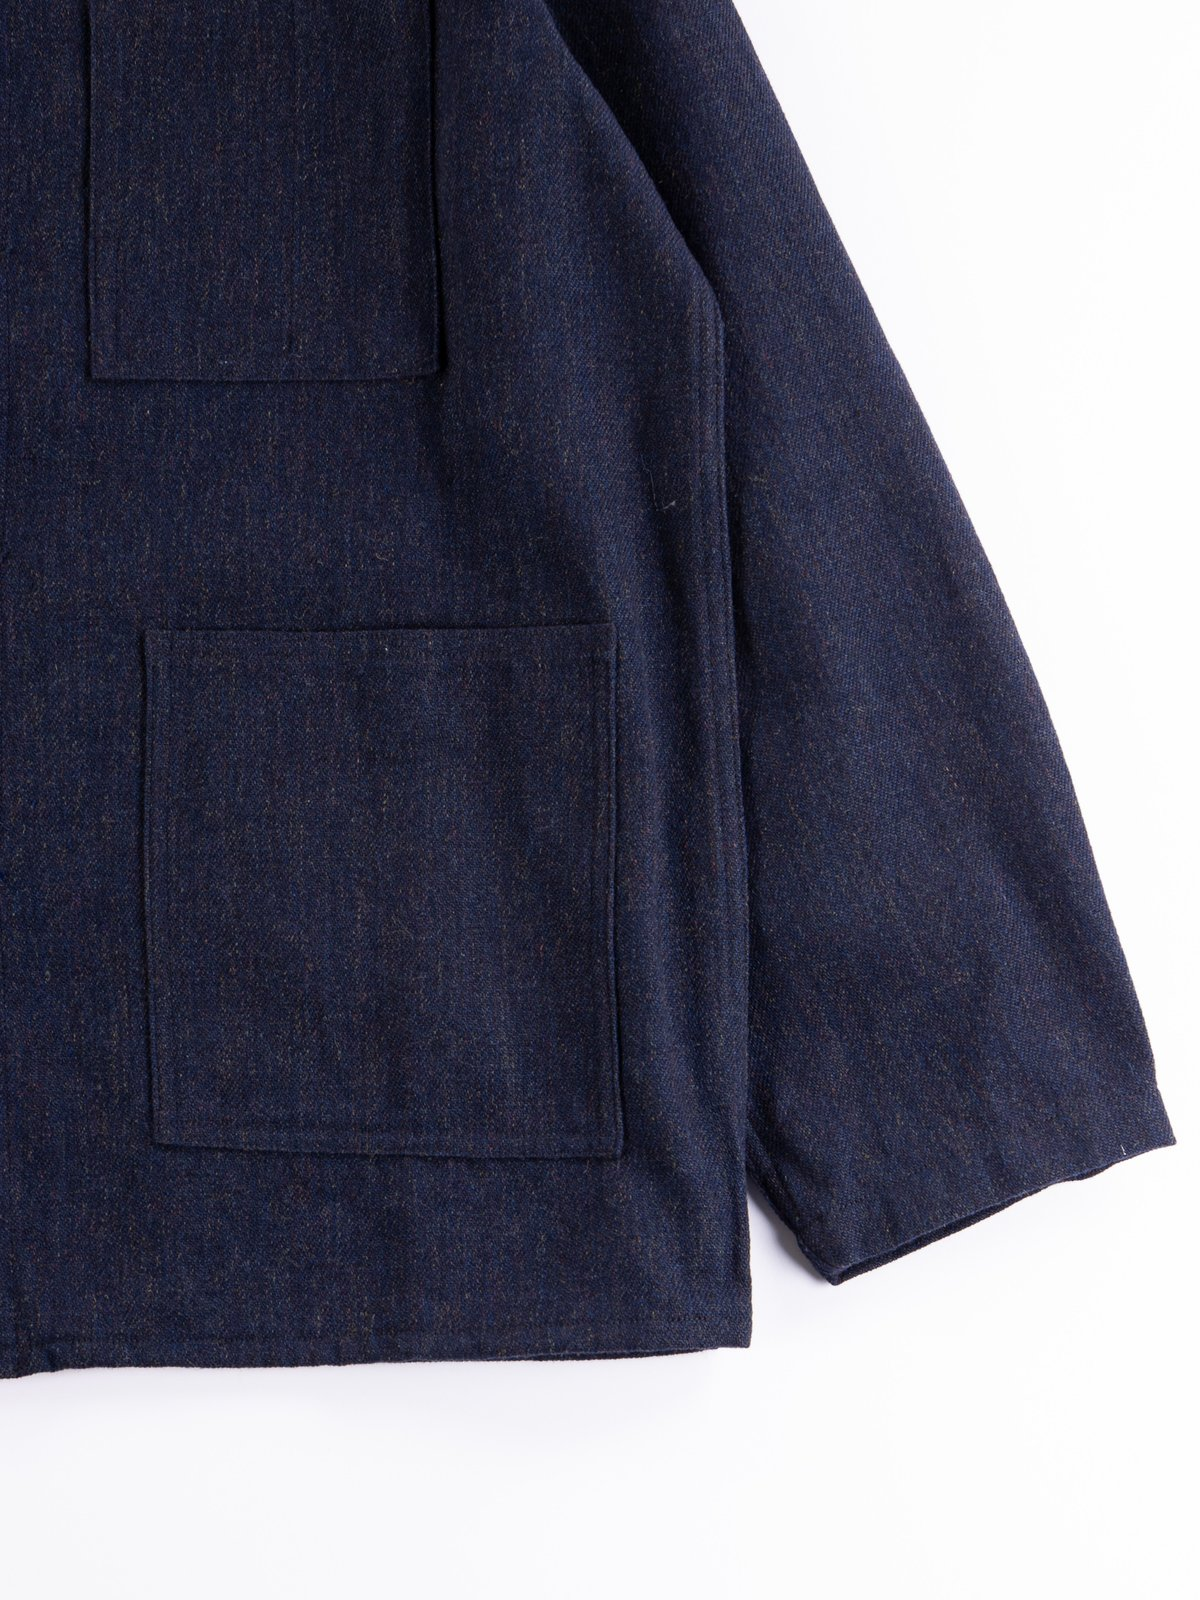 Navy Wool/Cotton Serge D.N Coverall - Image 3